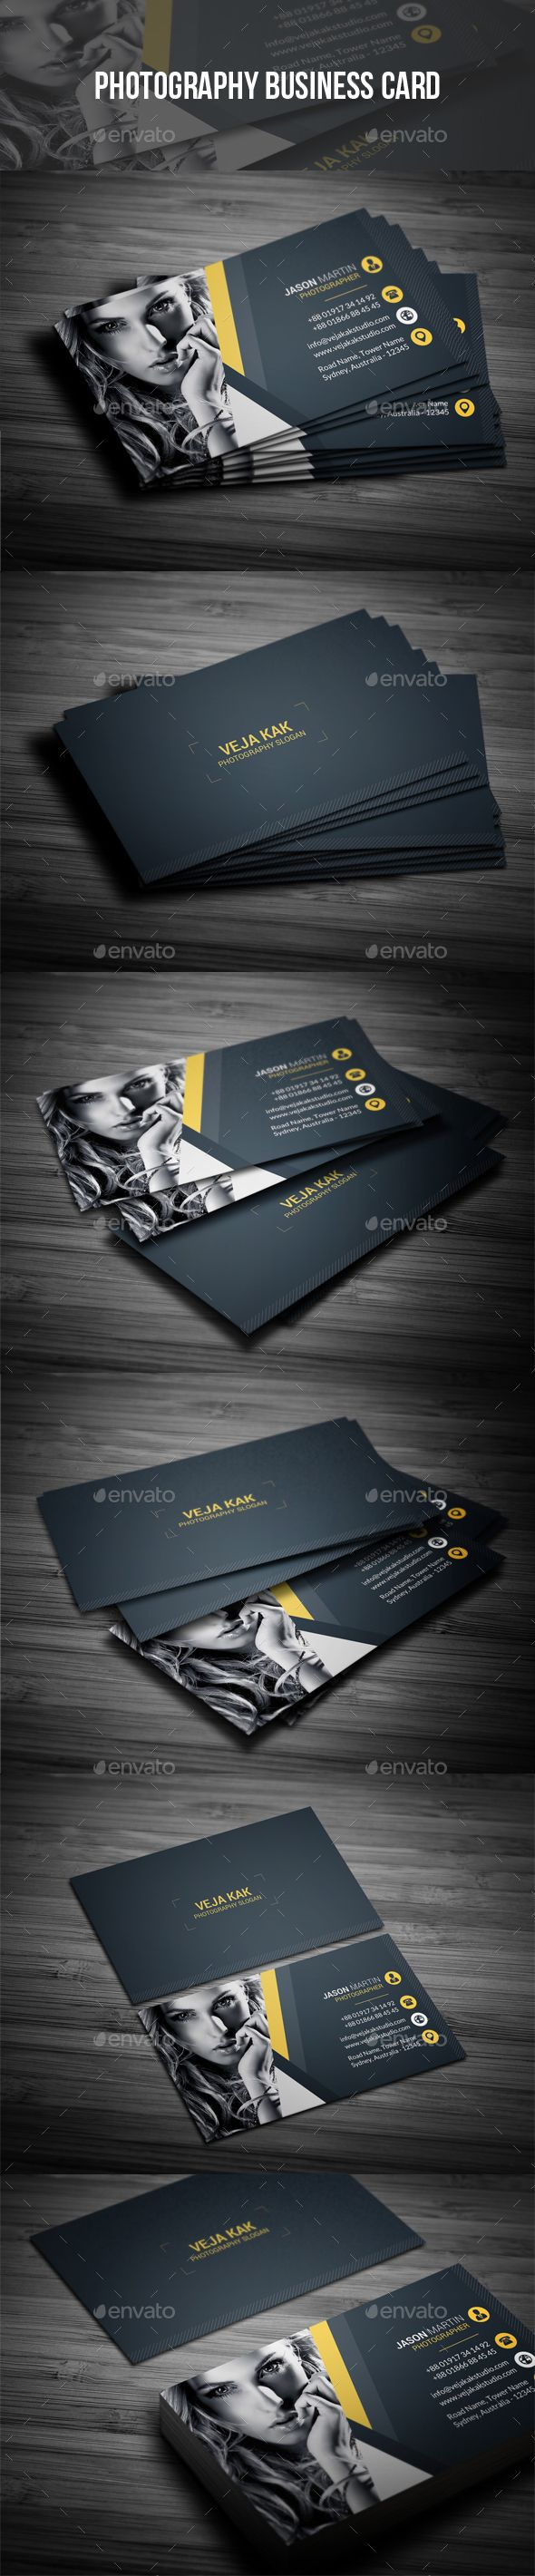 The 25 best photographer business cards ideas on pinterest photography business card magicingreecefo Gallery